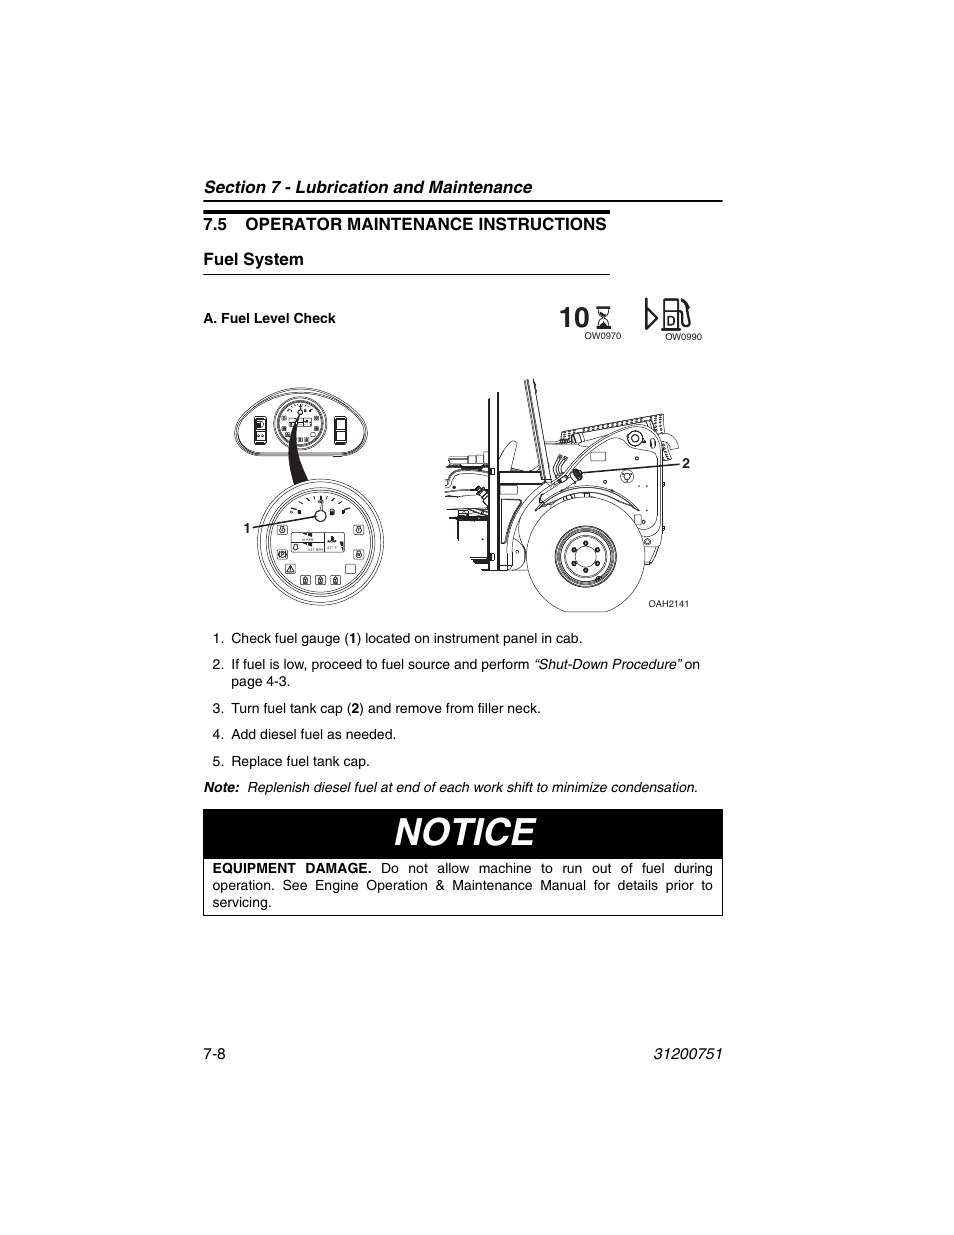 Deutz Fuel System Diagram Trusted Wiring Diagrams Engine 5 Operator Maintenance Instructions Freightliner